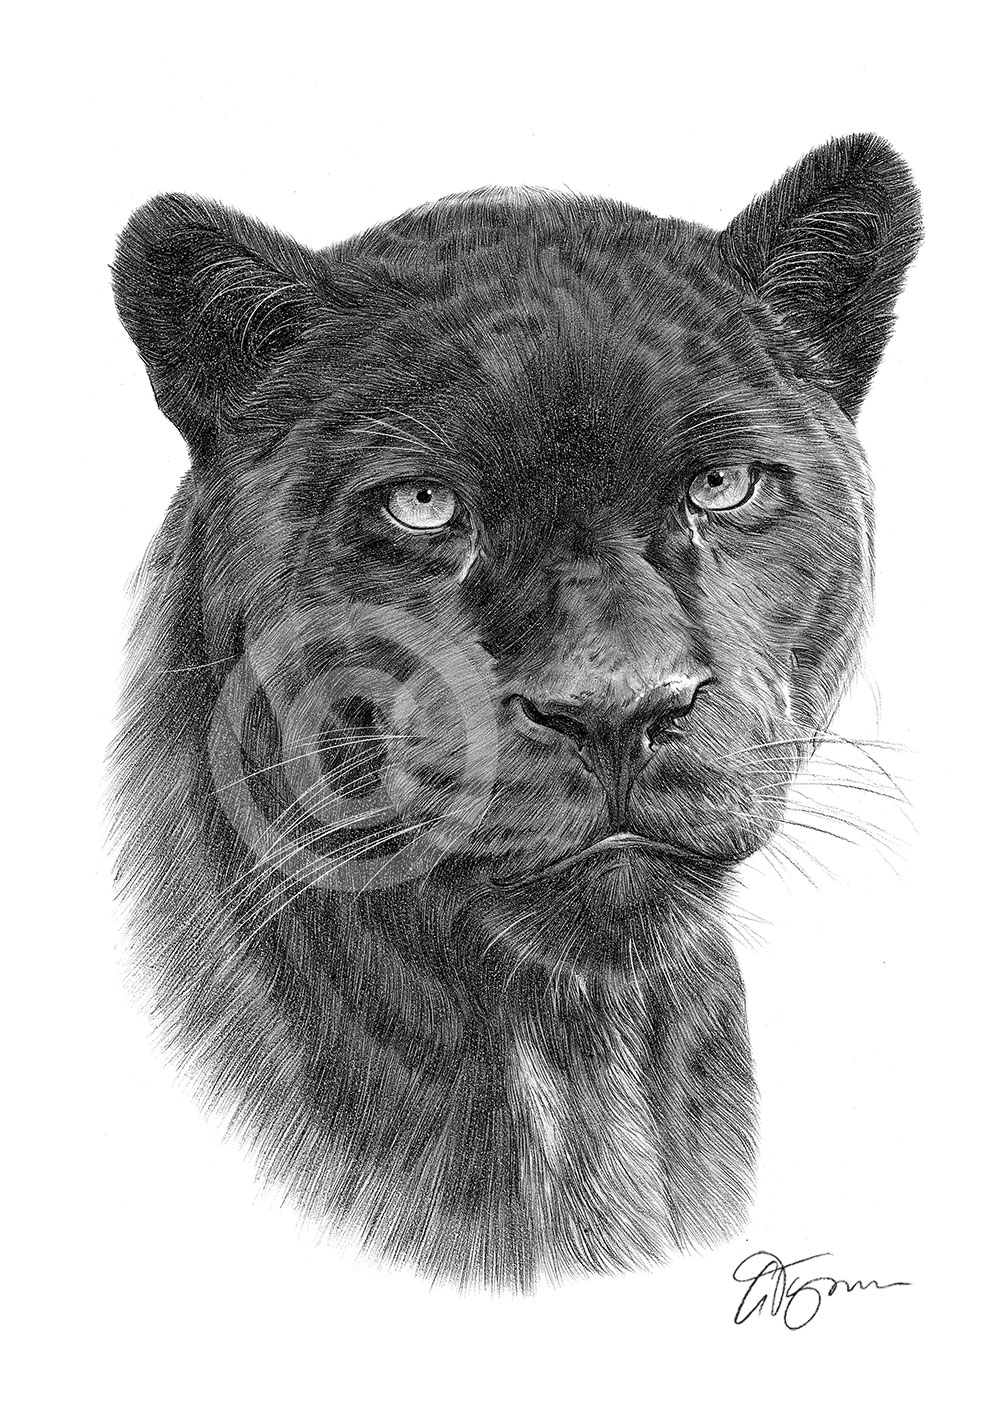 BLACK PANTHER Pencil Drawing Art Print A4/A3 Sizes African Wildlife Artwork | EBay